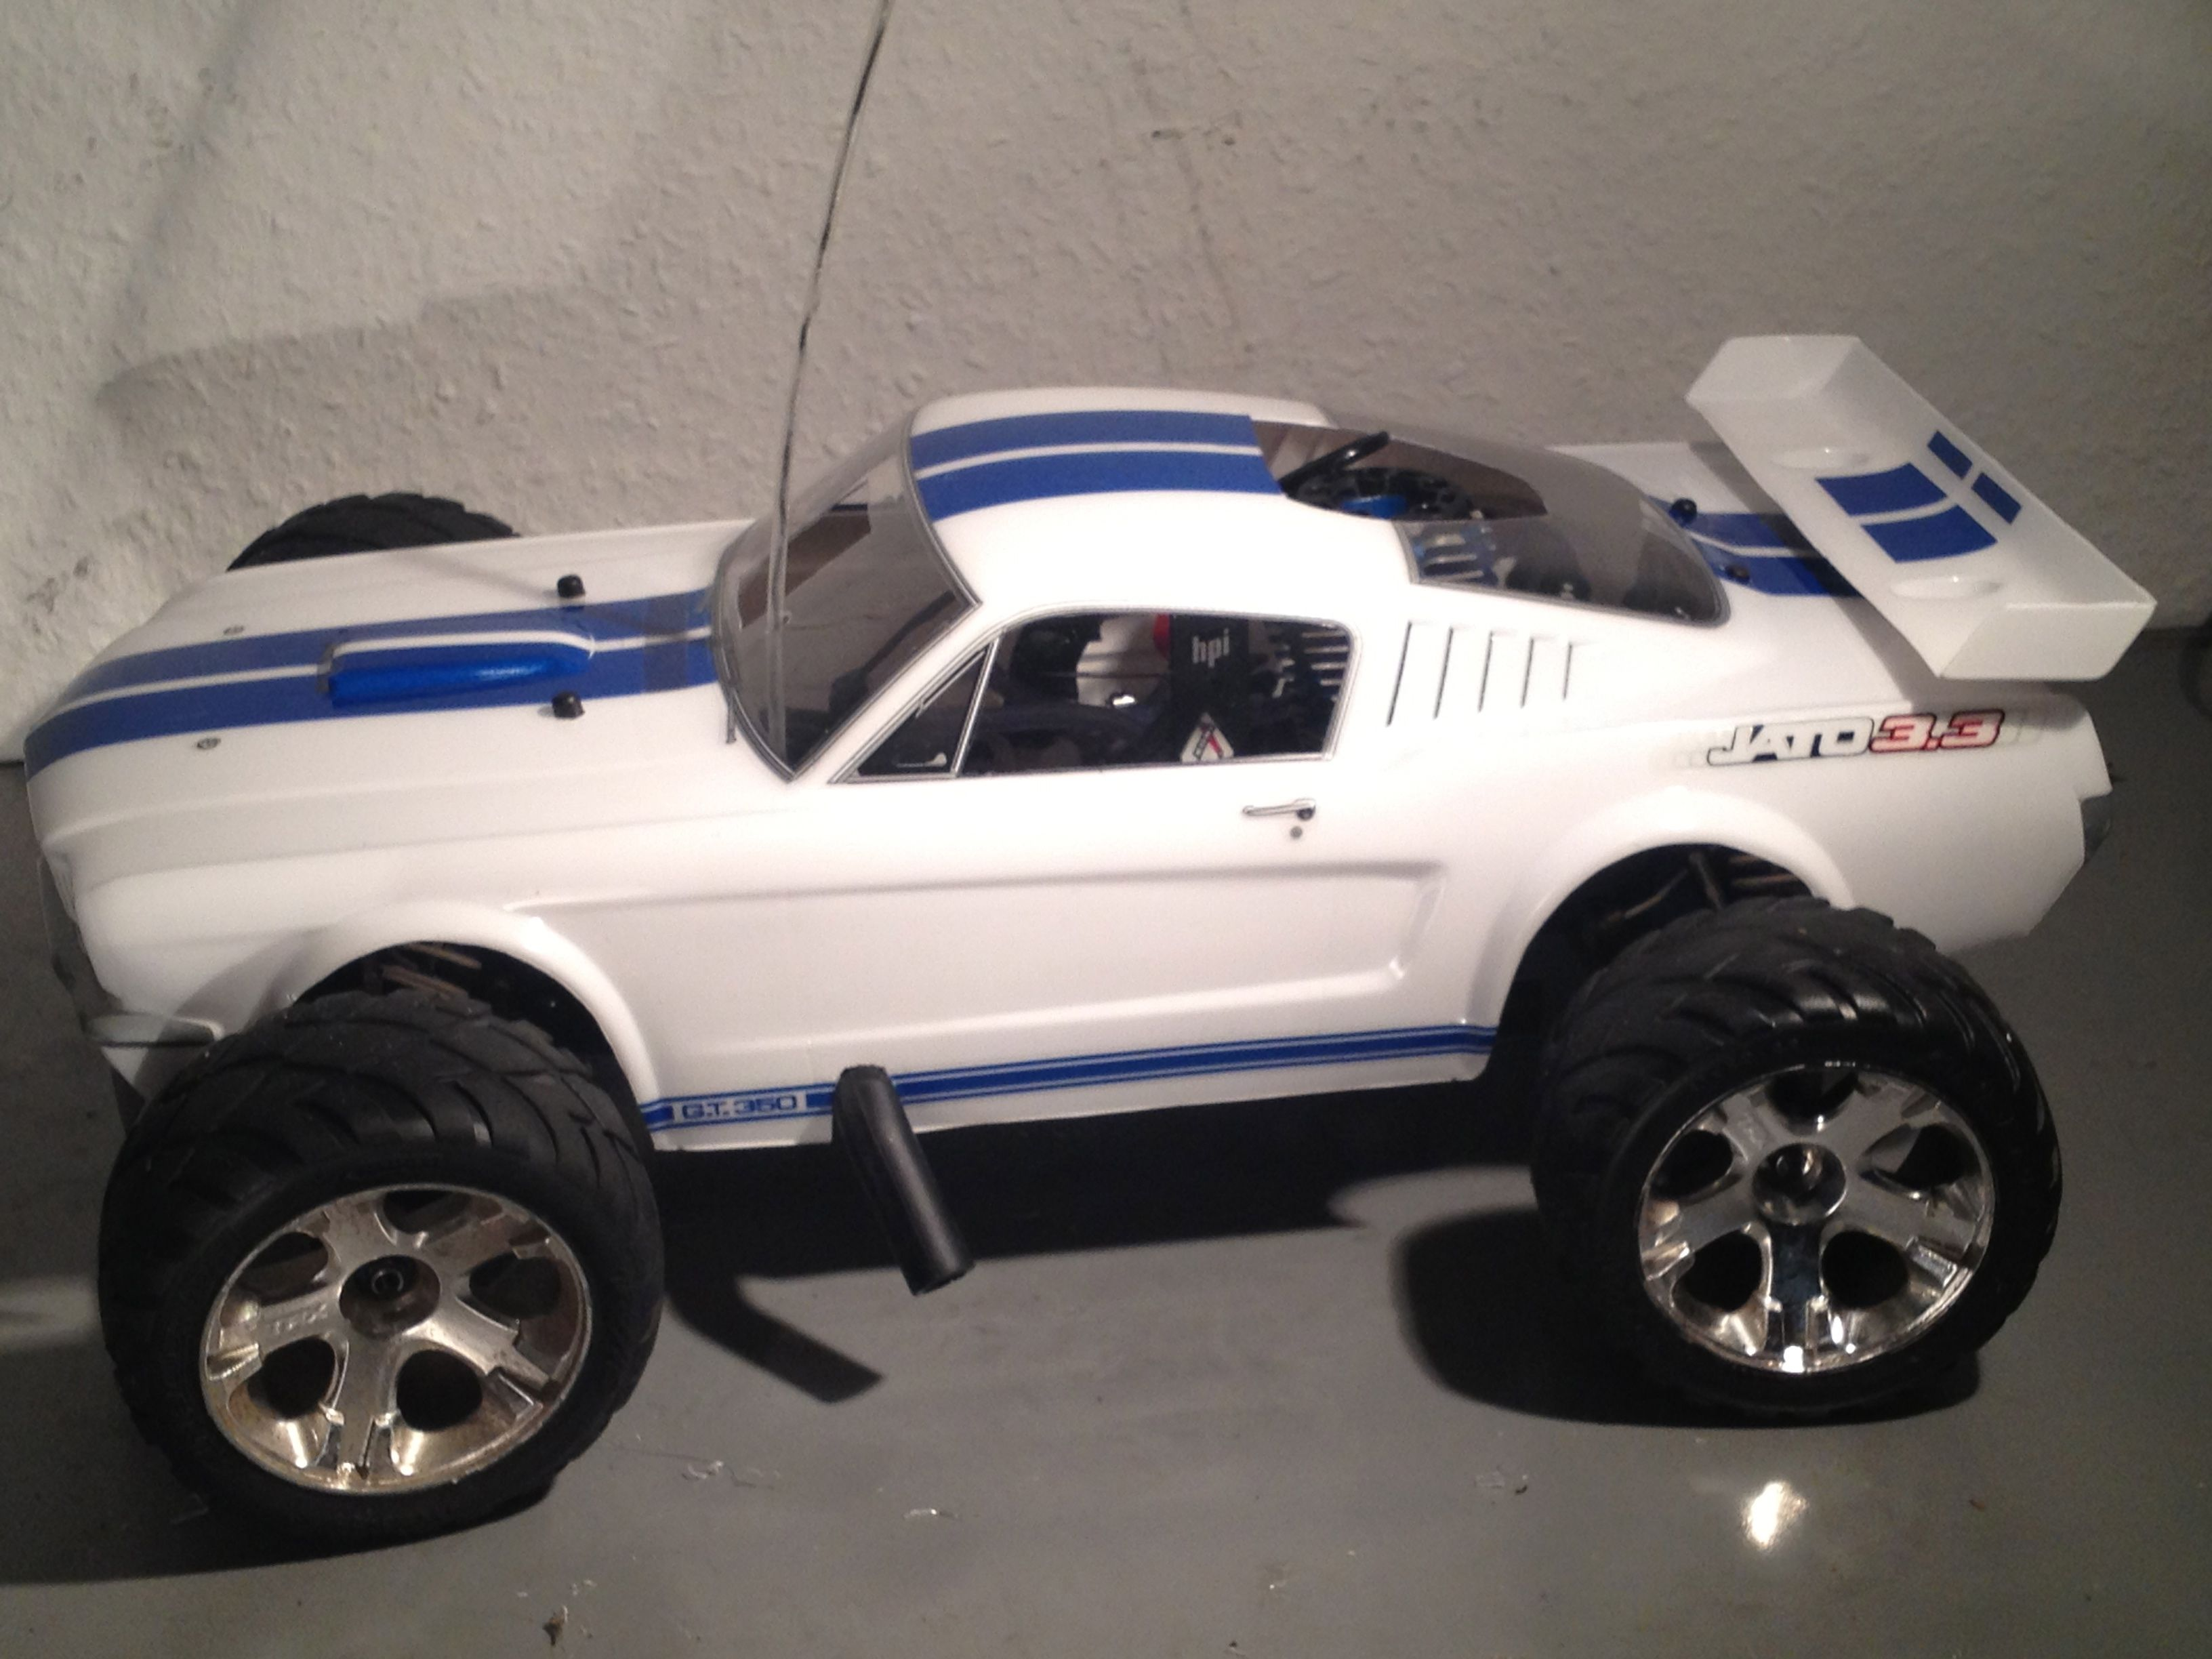 Shelby Mustang Body on Traxxas Jato